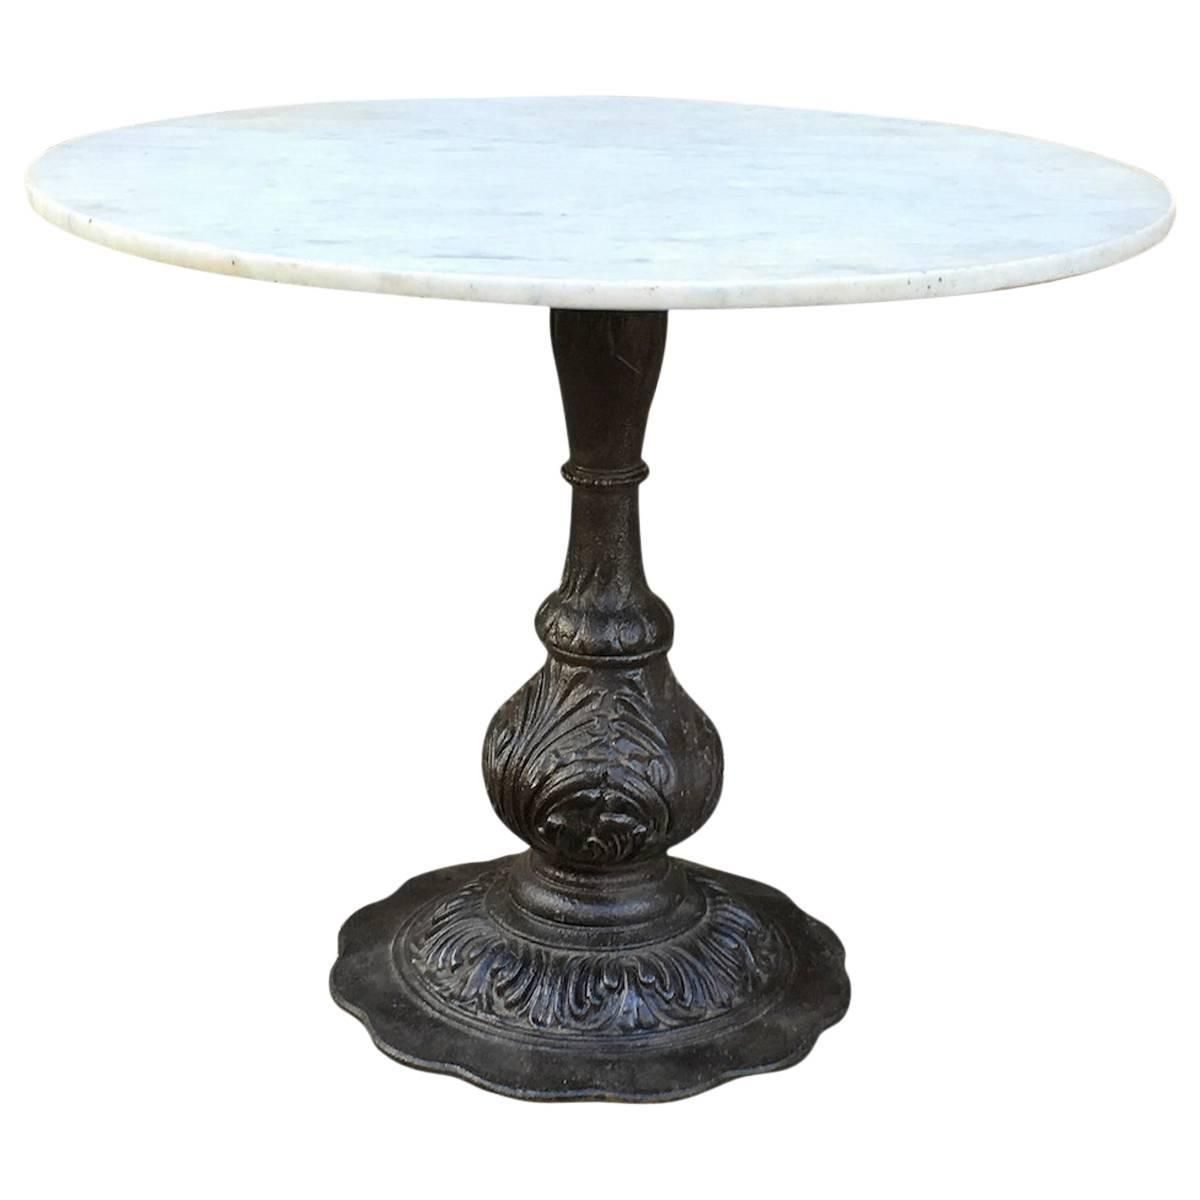 Marble Dining Table With Ornate Cast Iron Base 1